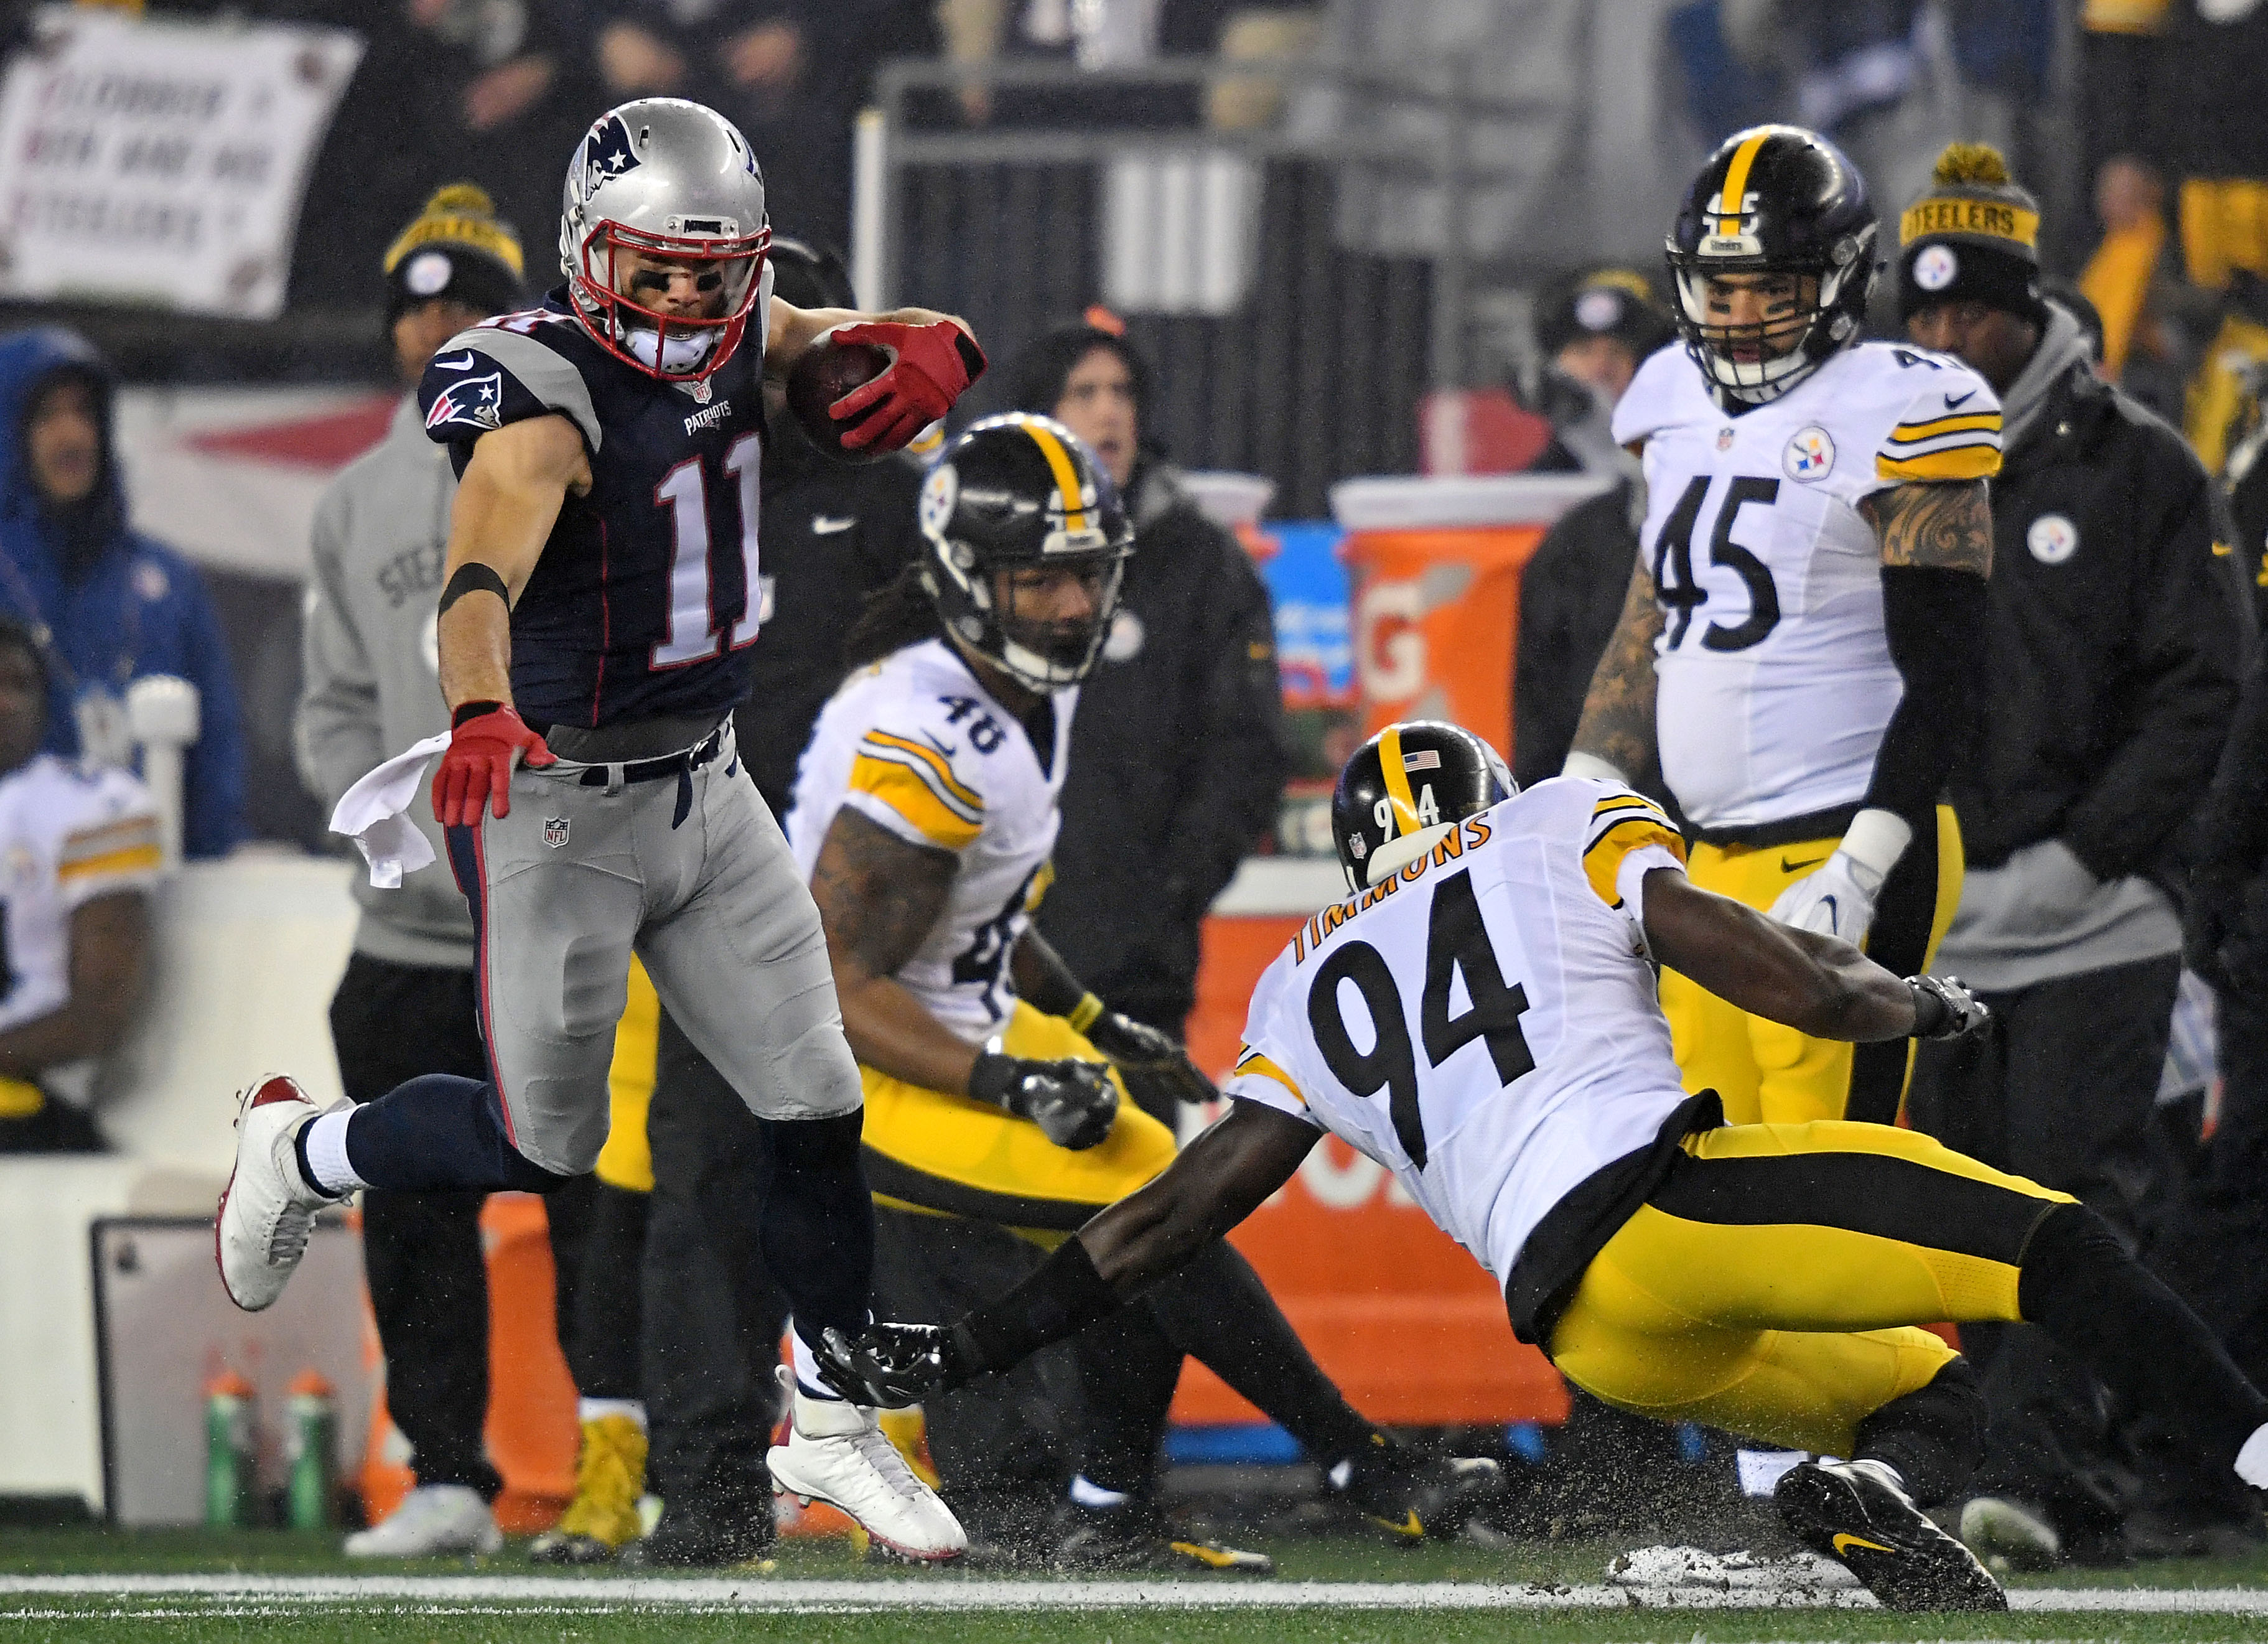 9832345-nfl-afc-championship-pittsburgh-steelers-at-new-england-patriots